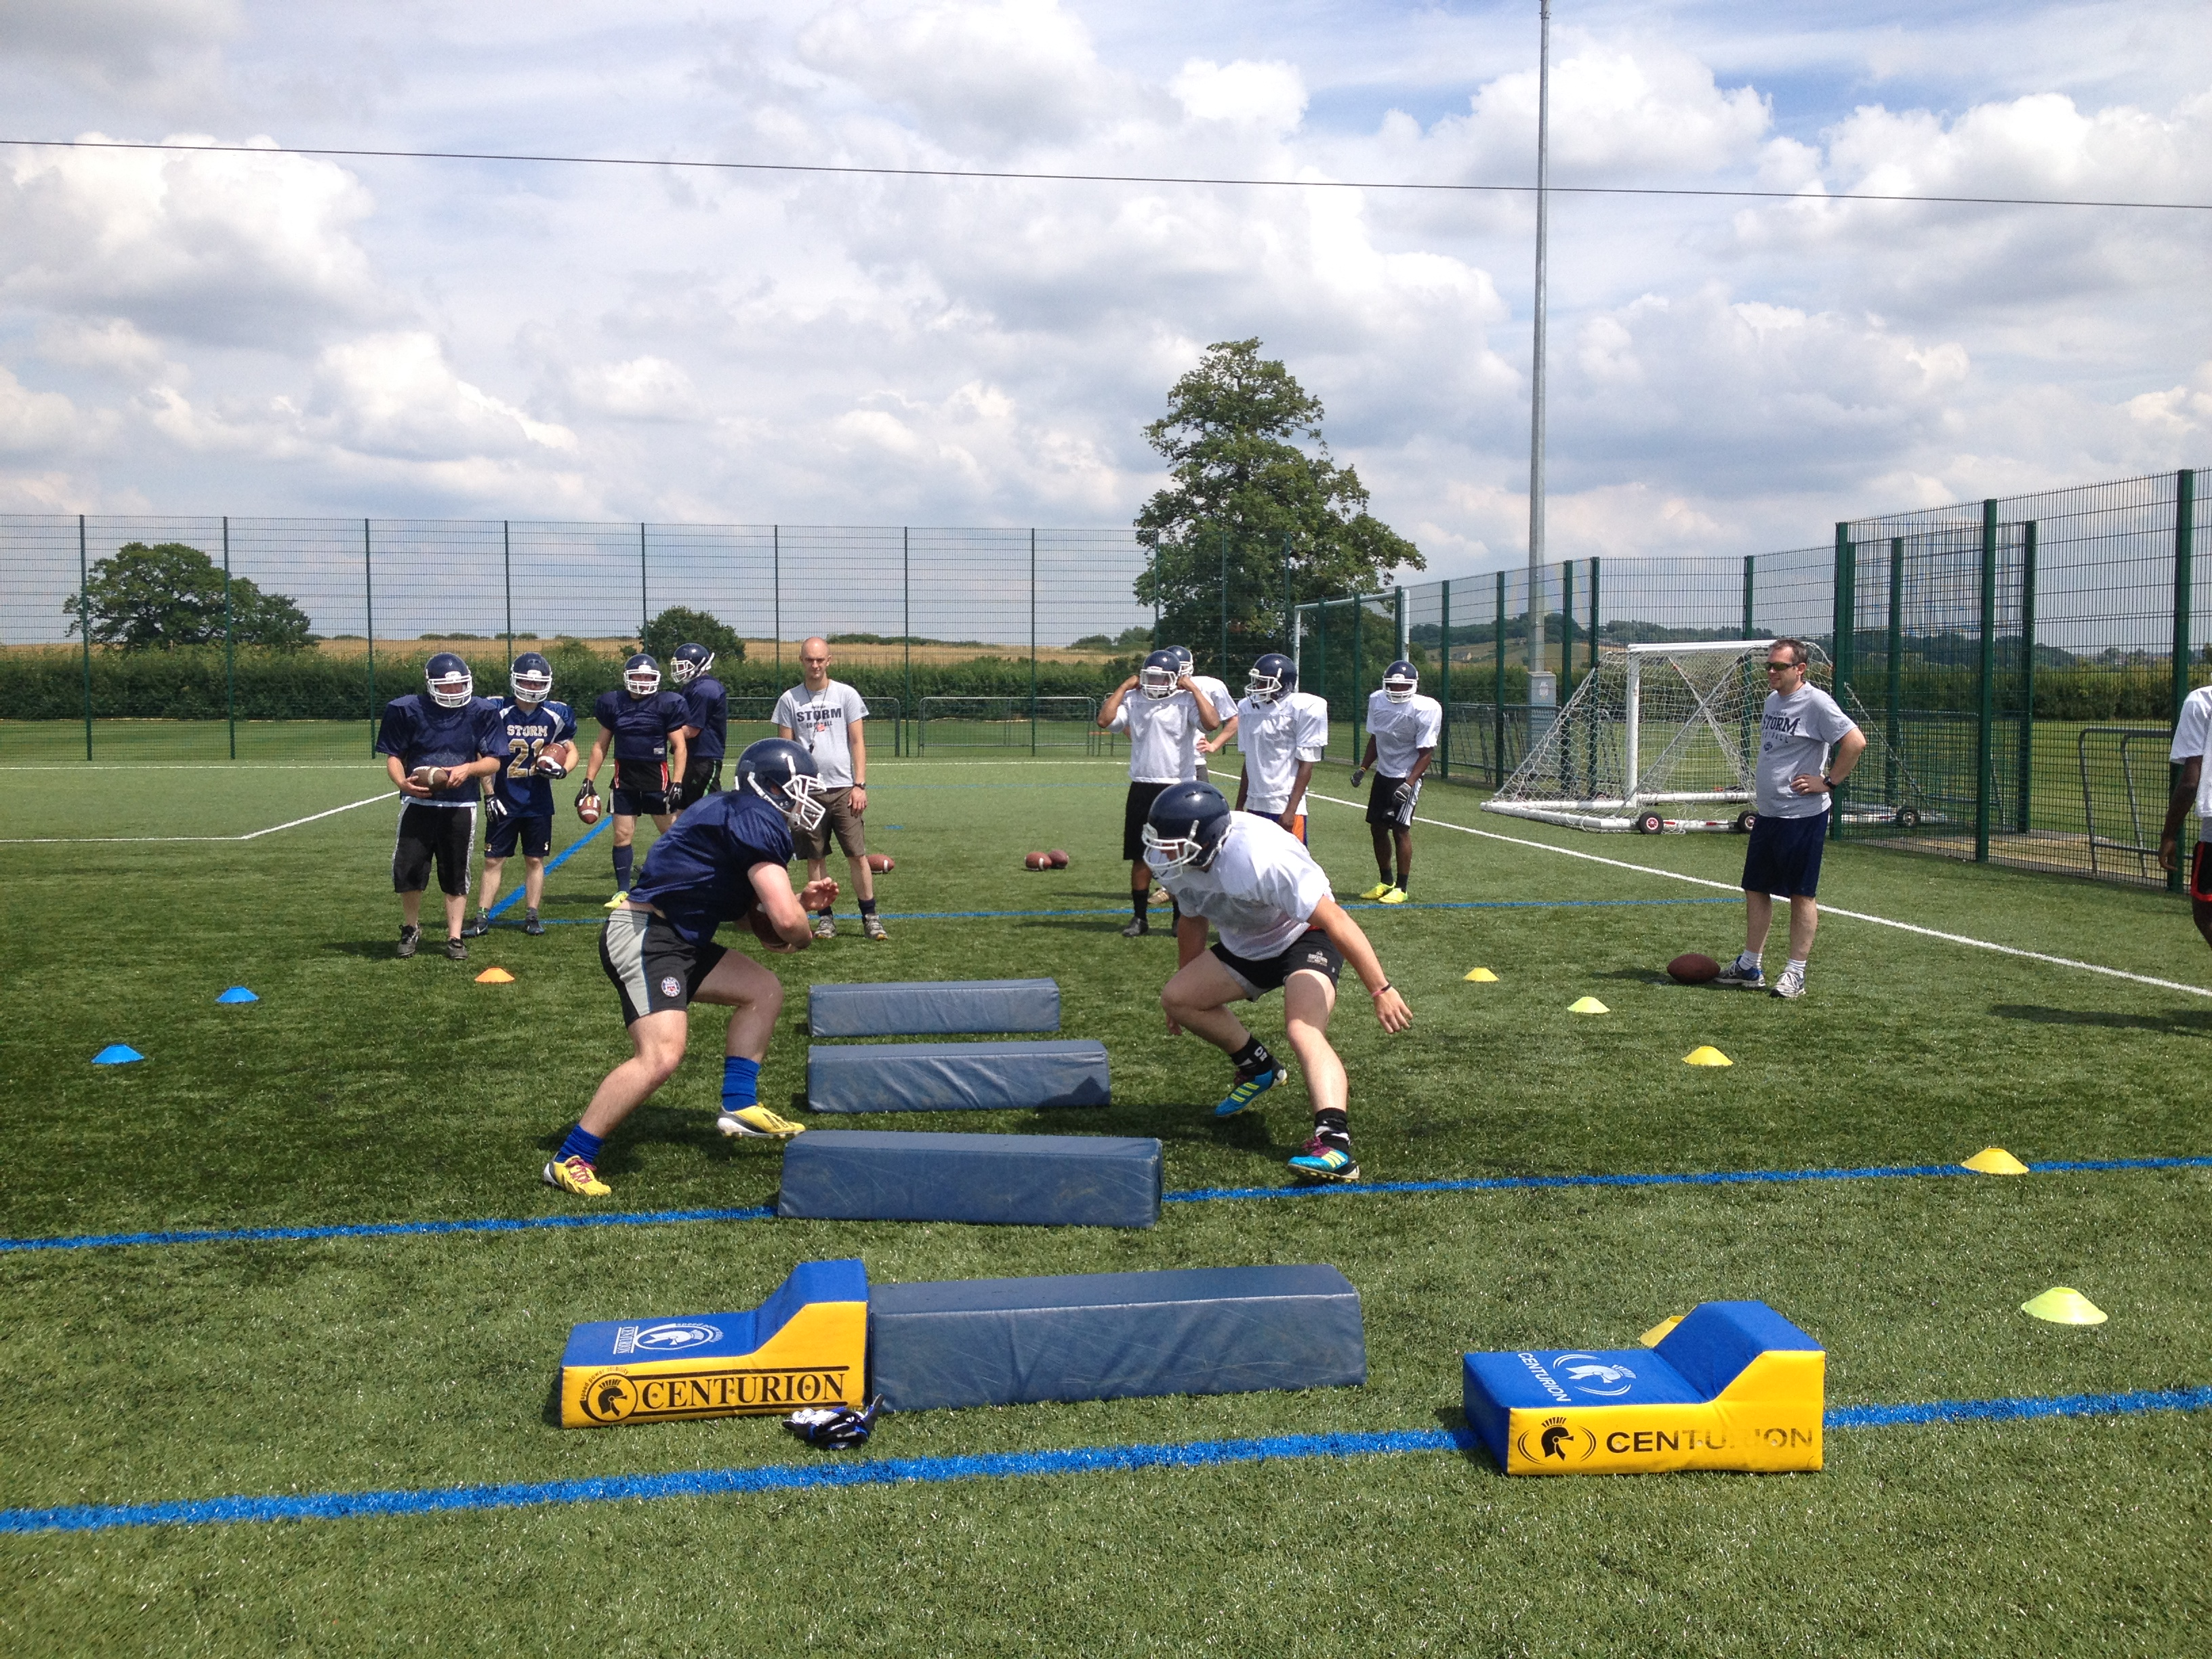 Offence v Defence Drill